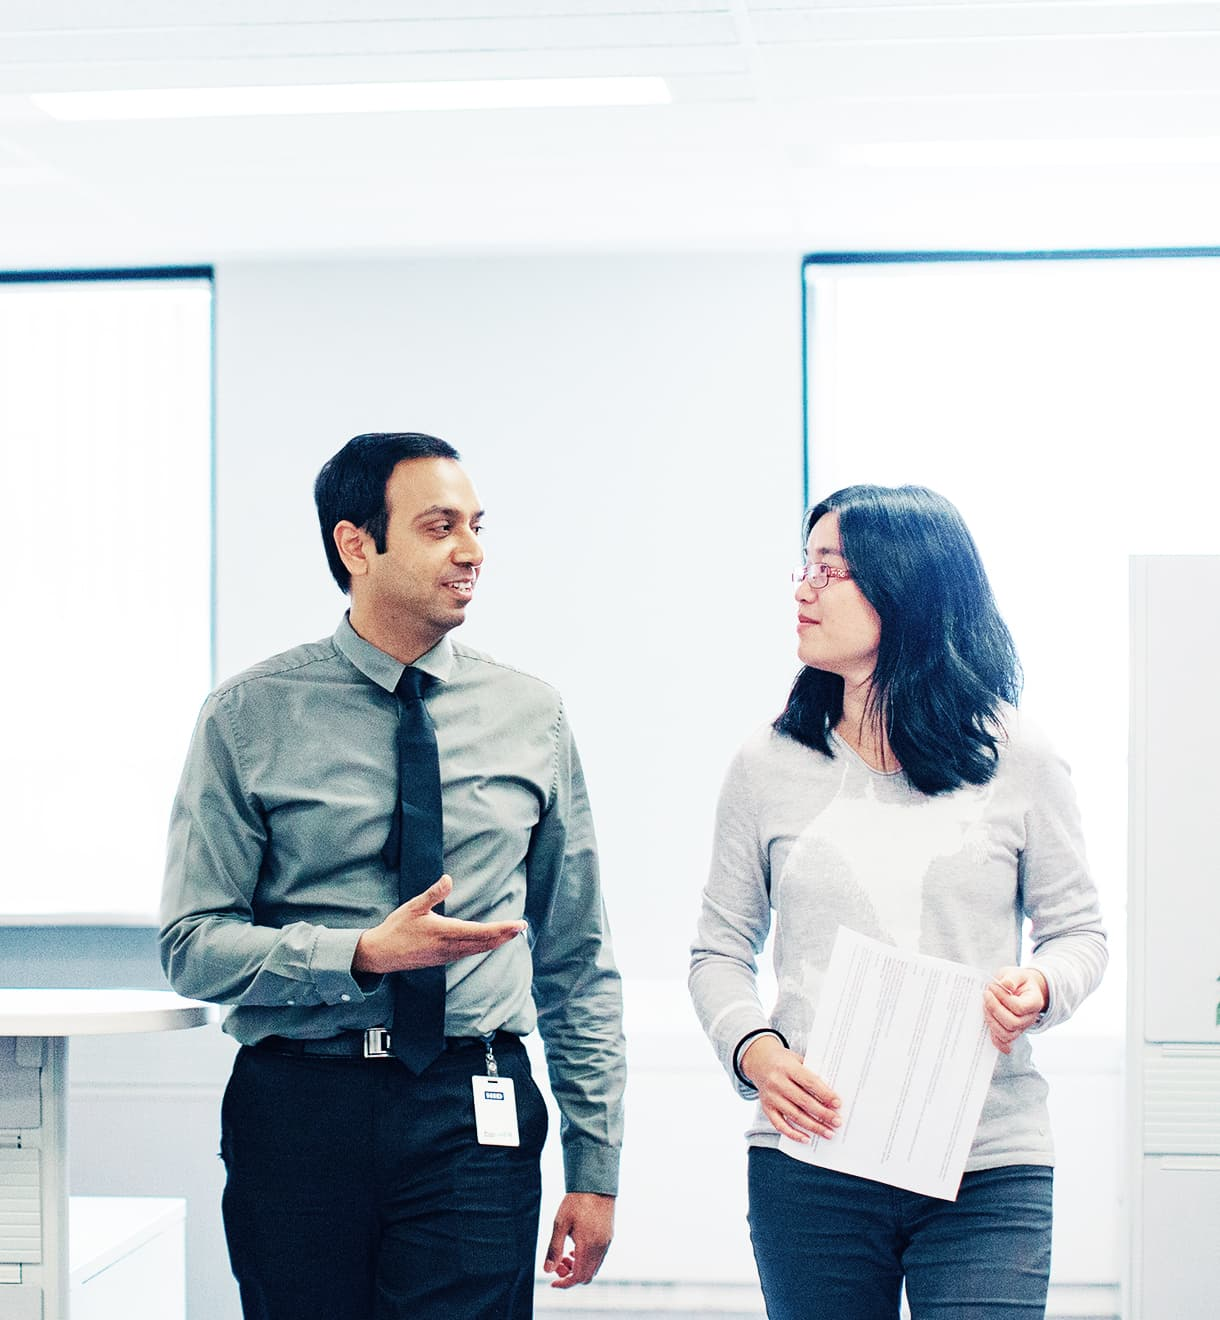 Image of two HealthPRO employees in conversation